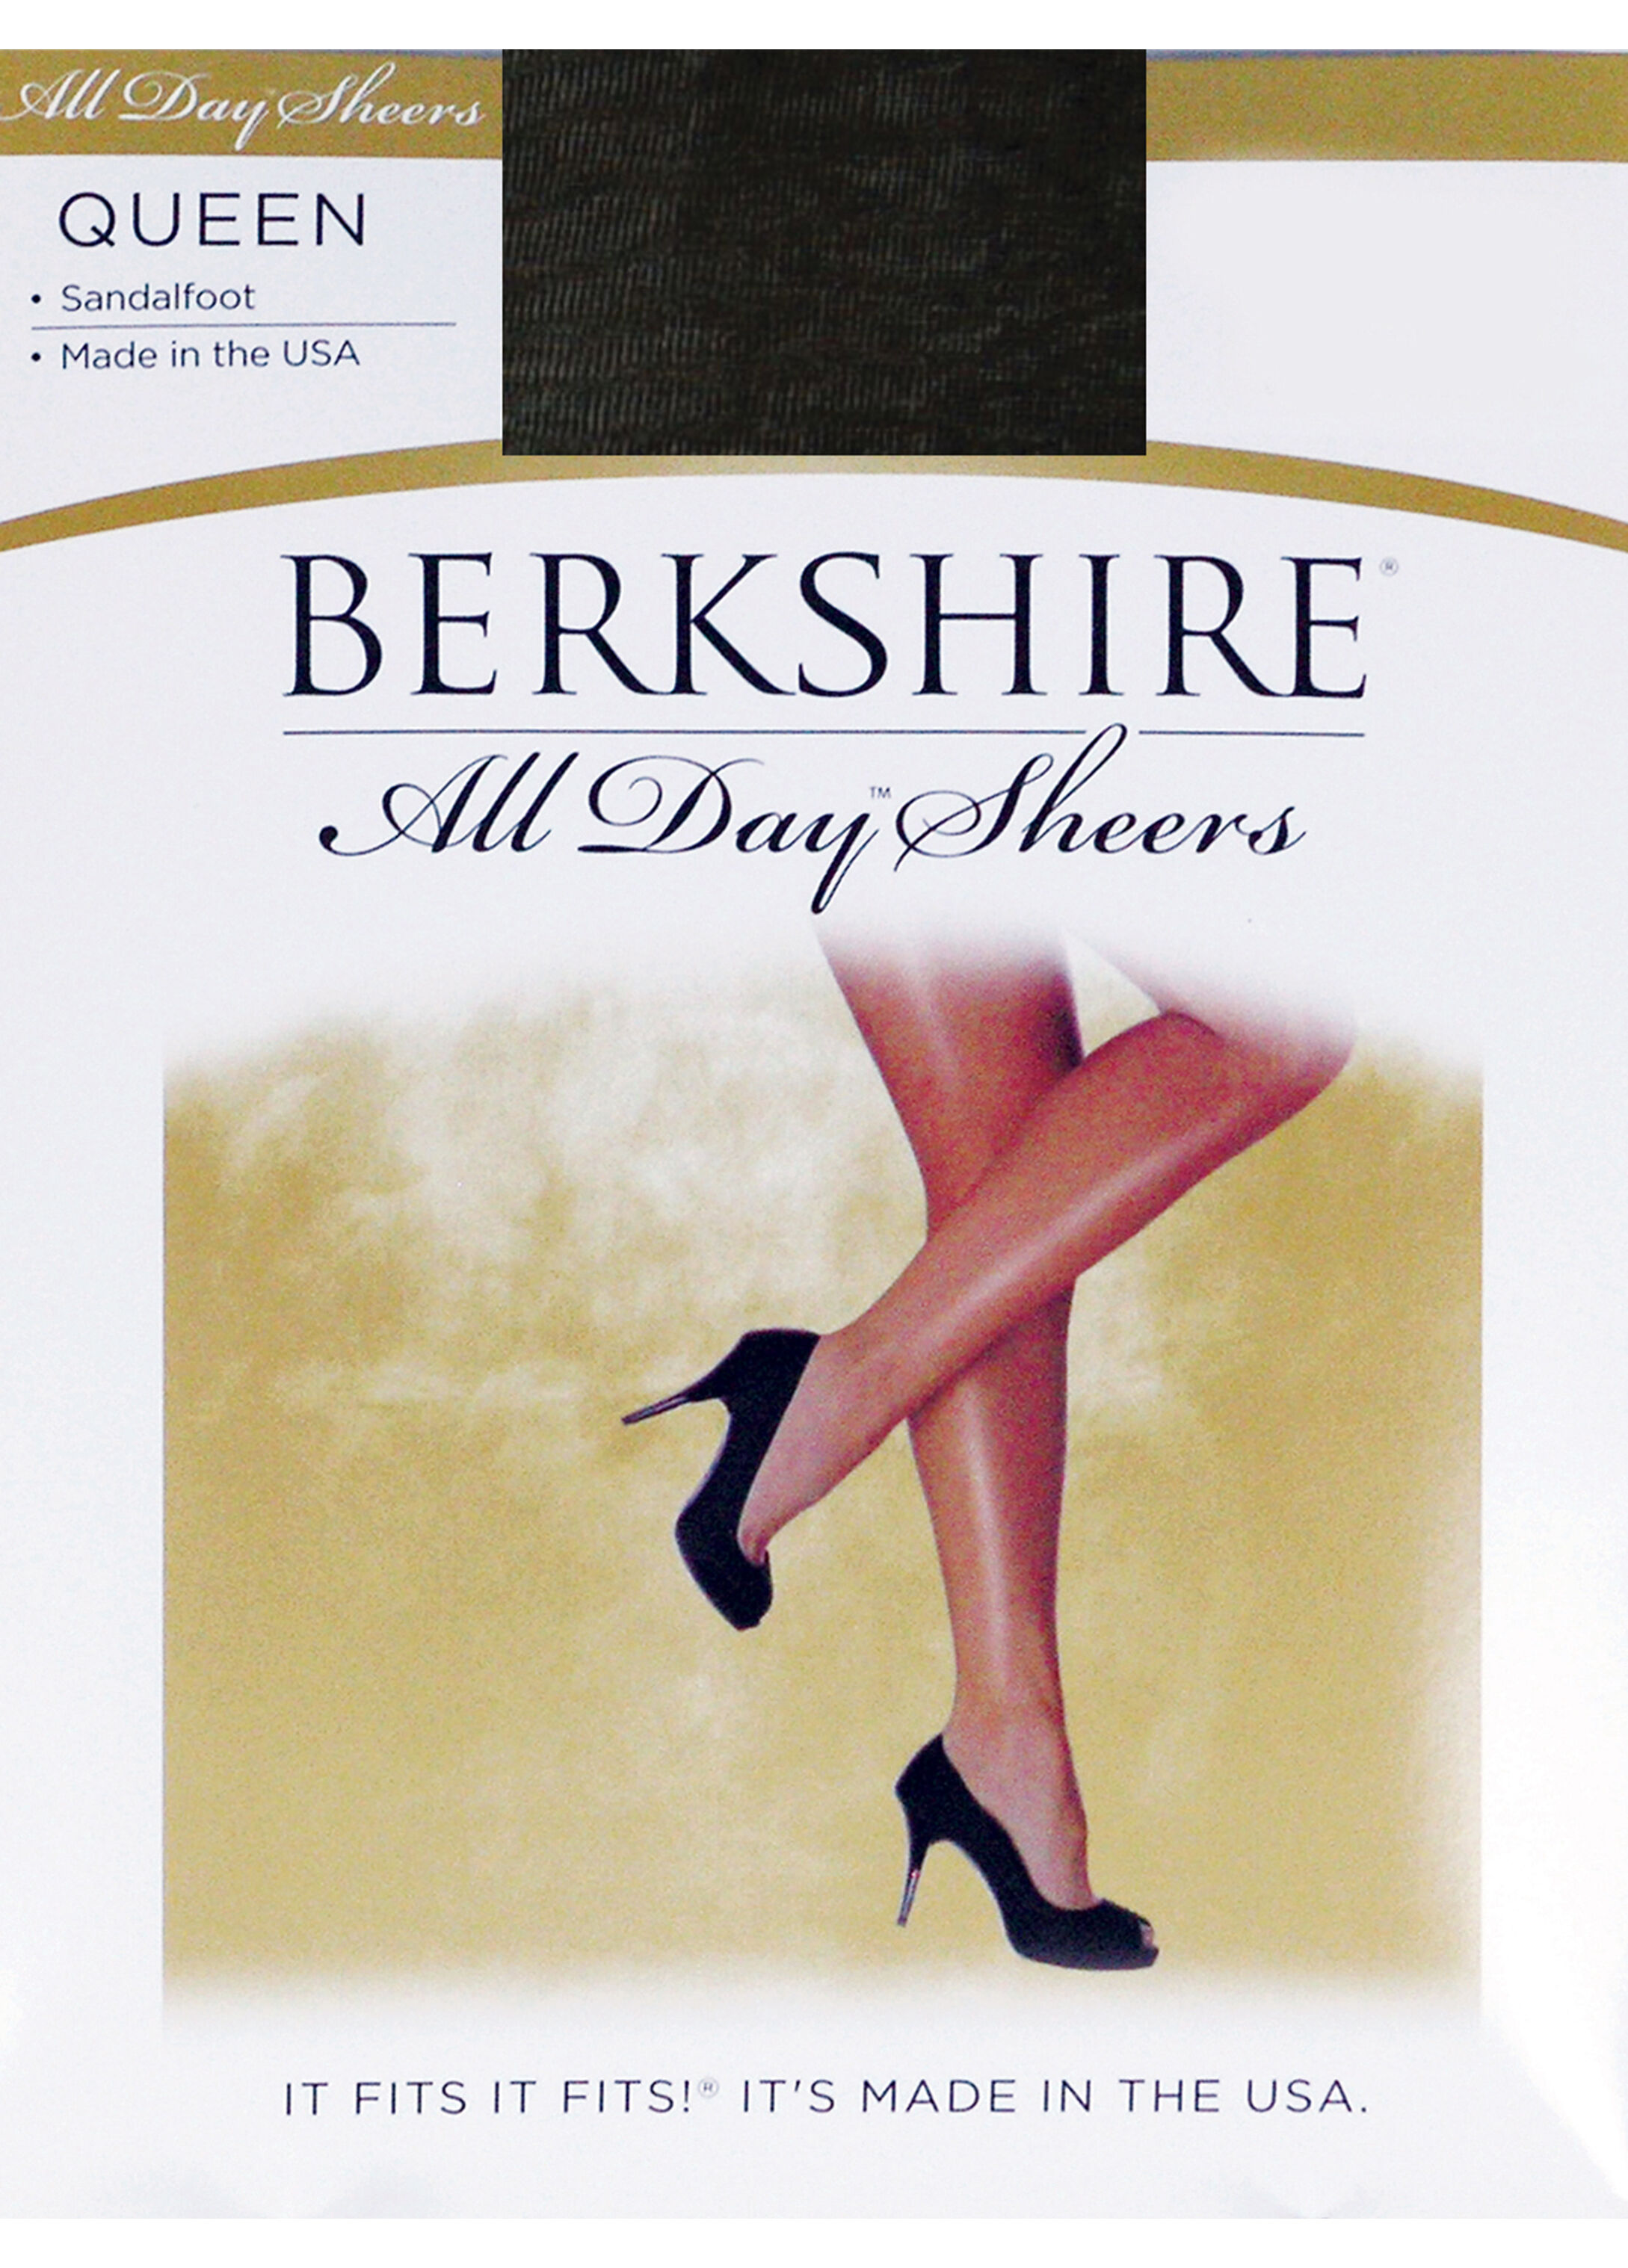 Berkshire All Day Sheer Sandalfoot Pantyhose